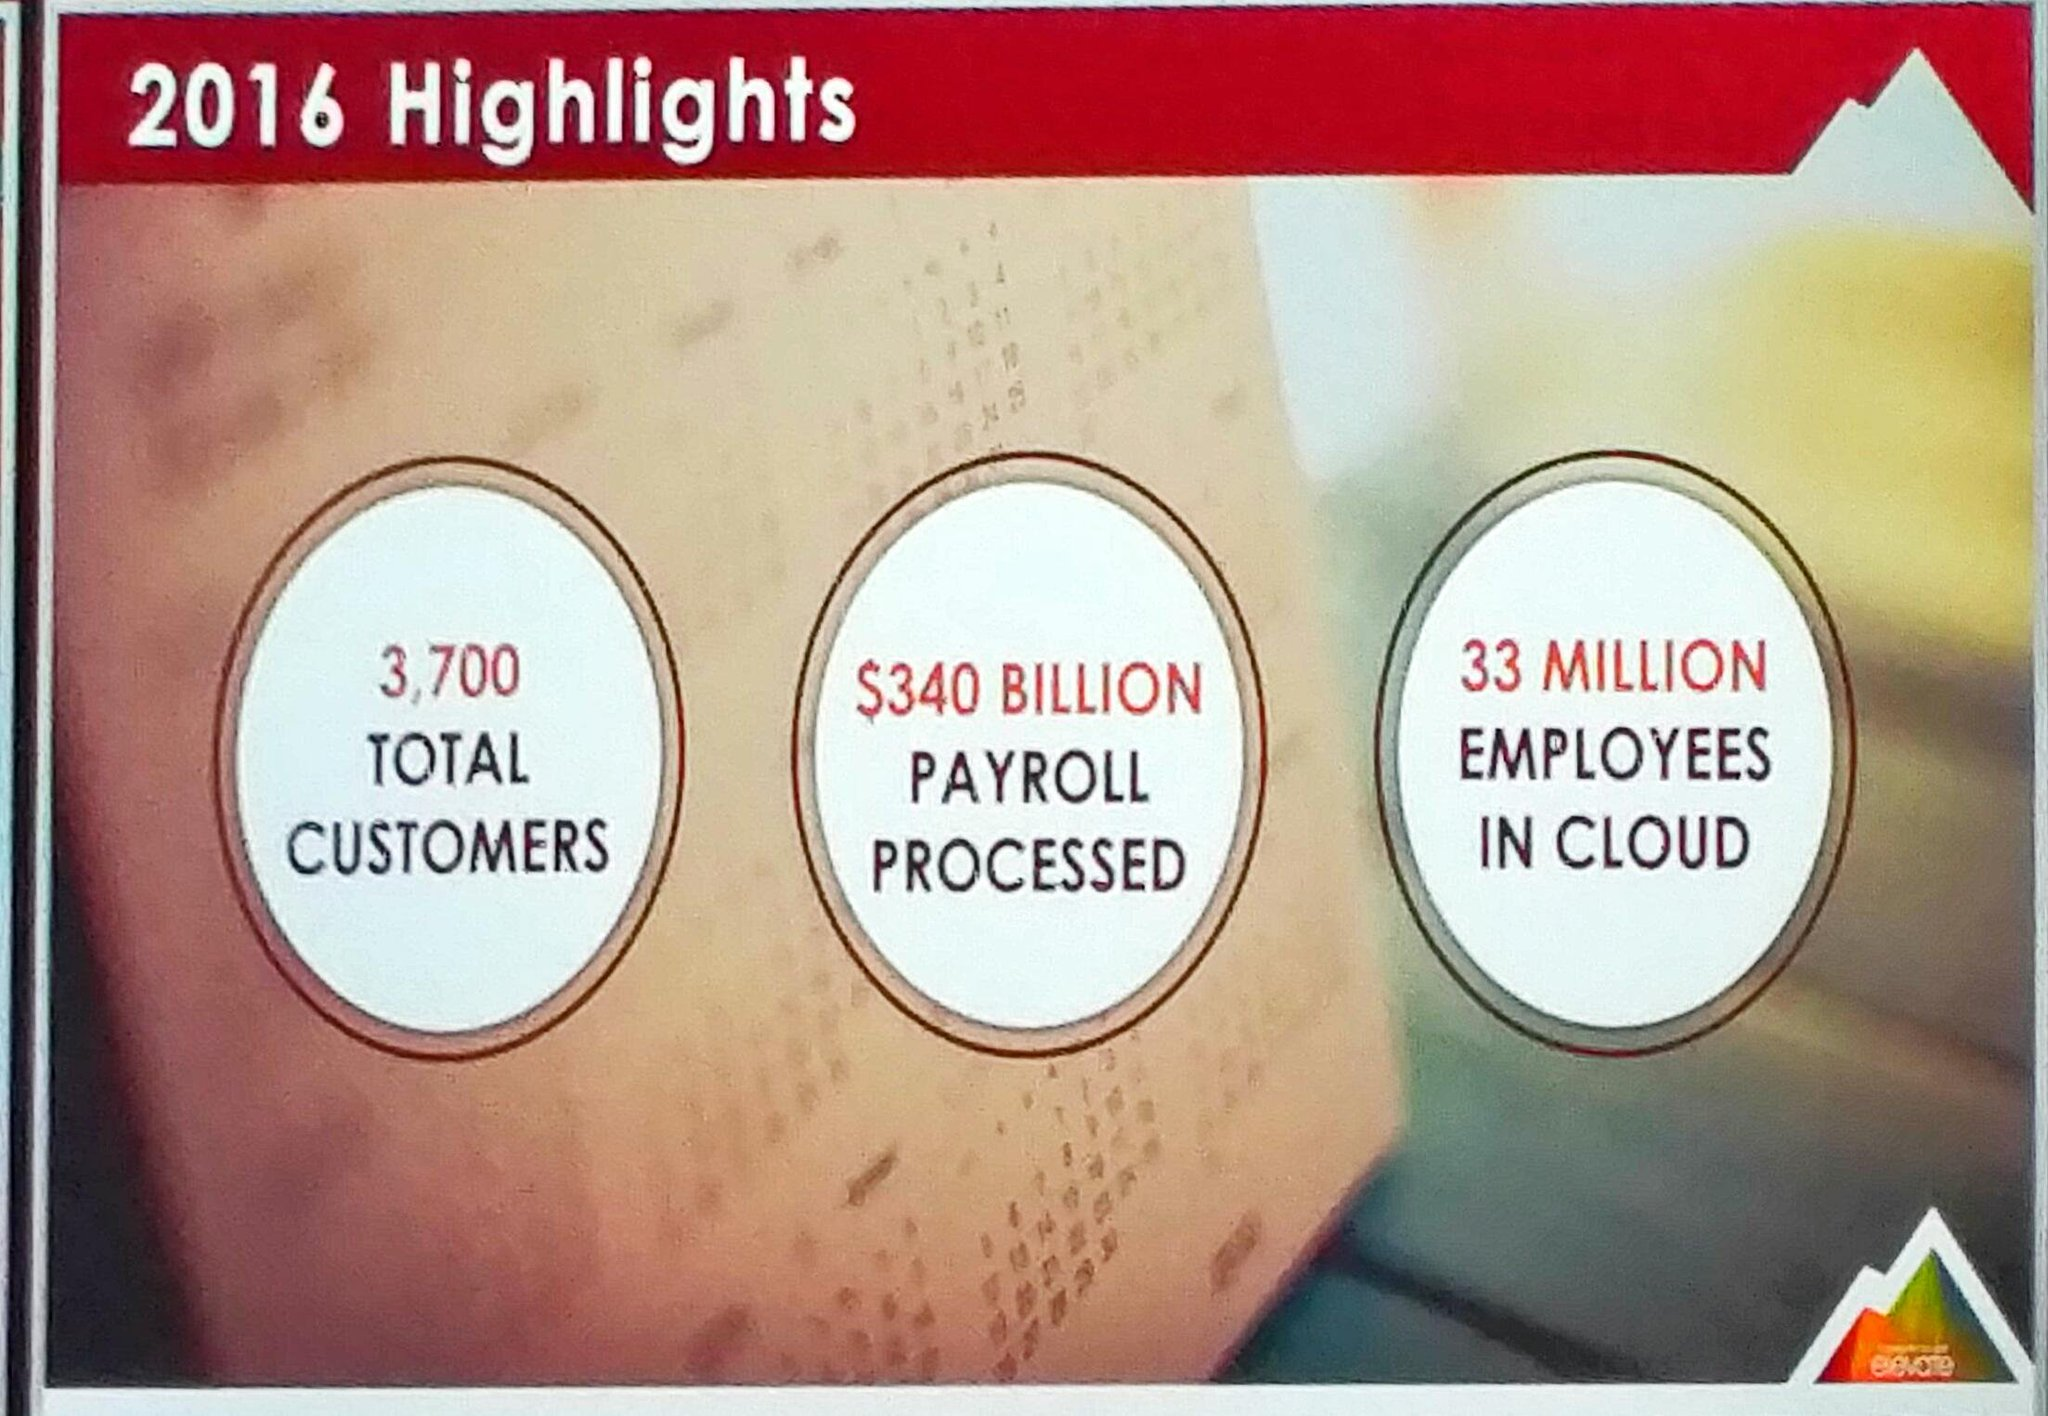 2916 @UltimateHCM highlights  3700 customers  340B payroll processed  33 EE in #cloud  #Ulticonnect https://t.co/A7TIBwRRAO